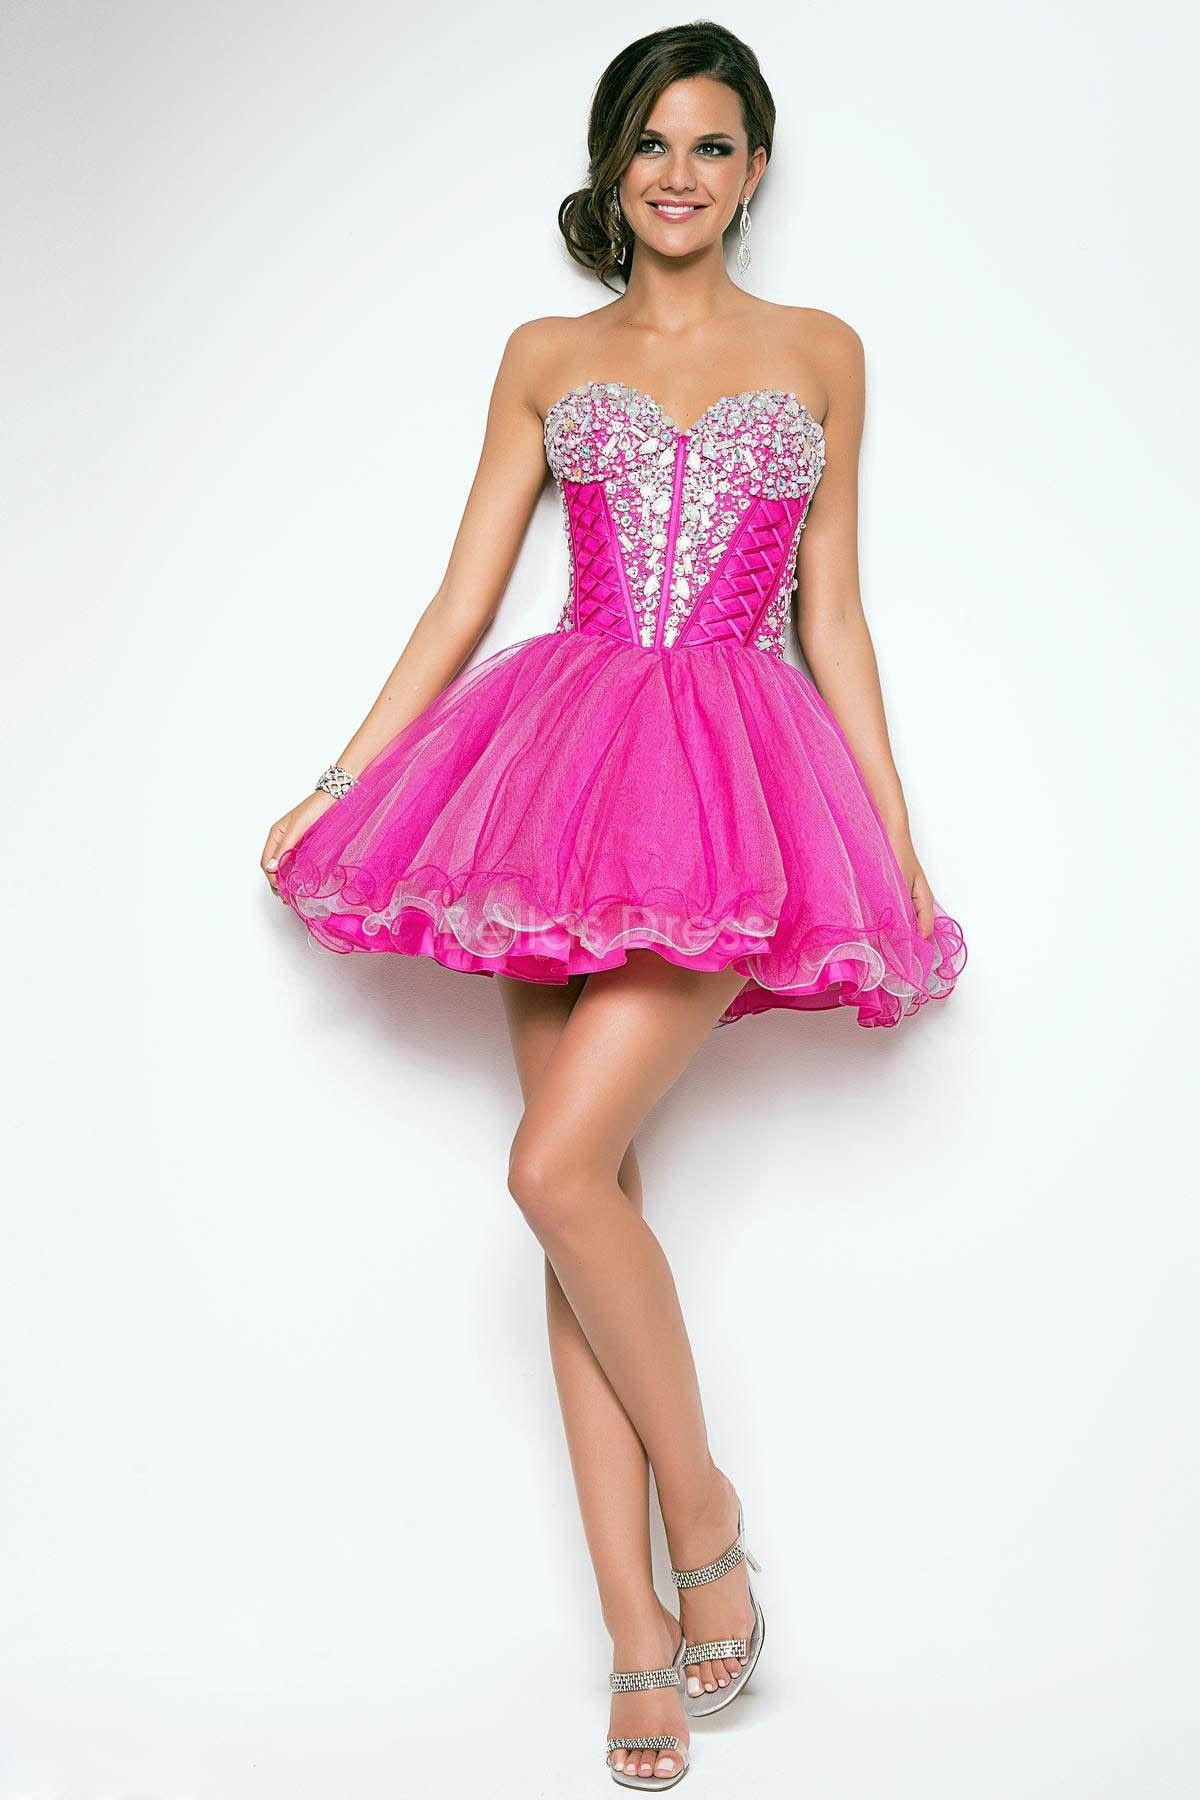 Prom Dresses 2014 Short Pink - Missy Dress